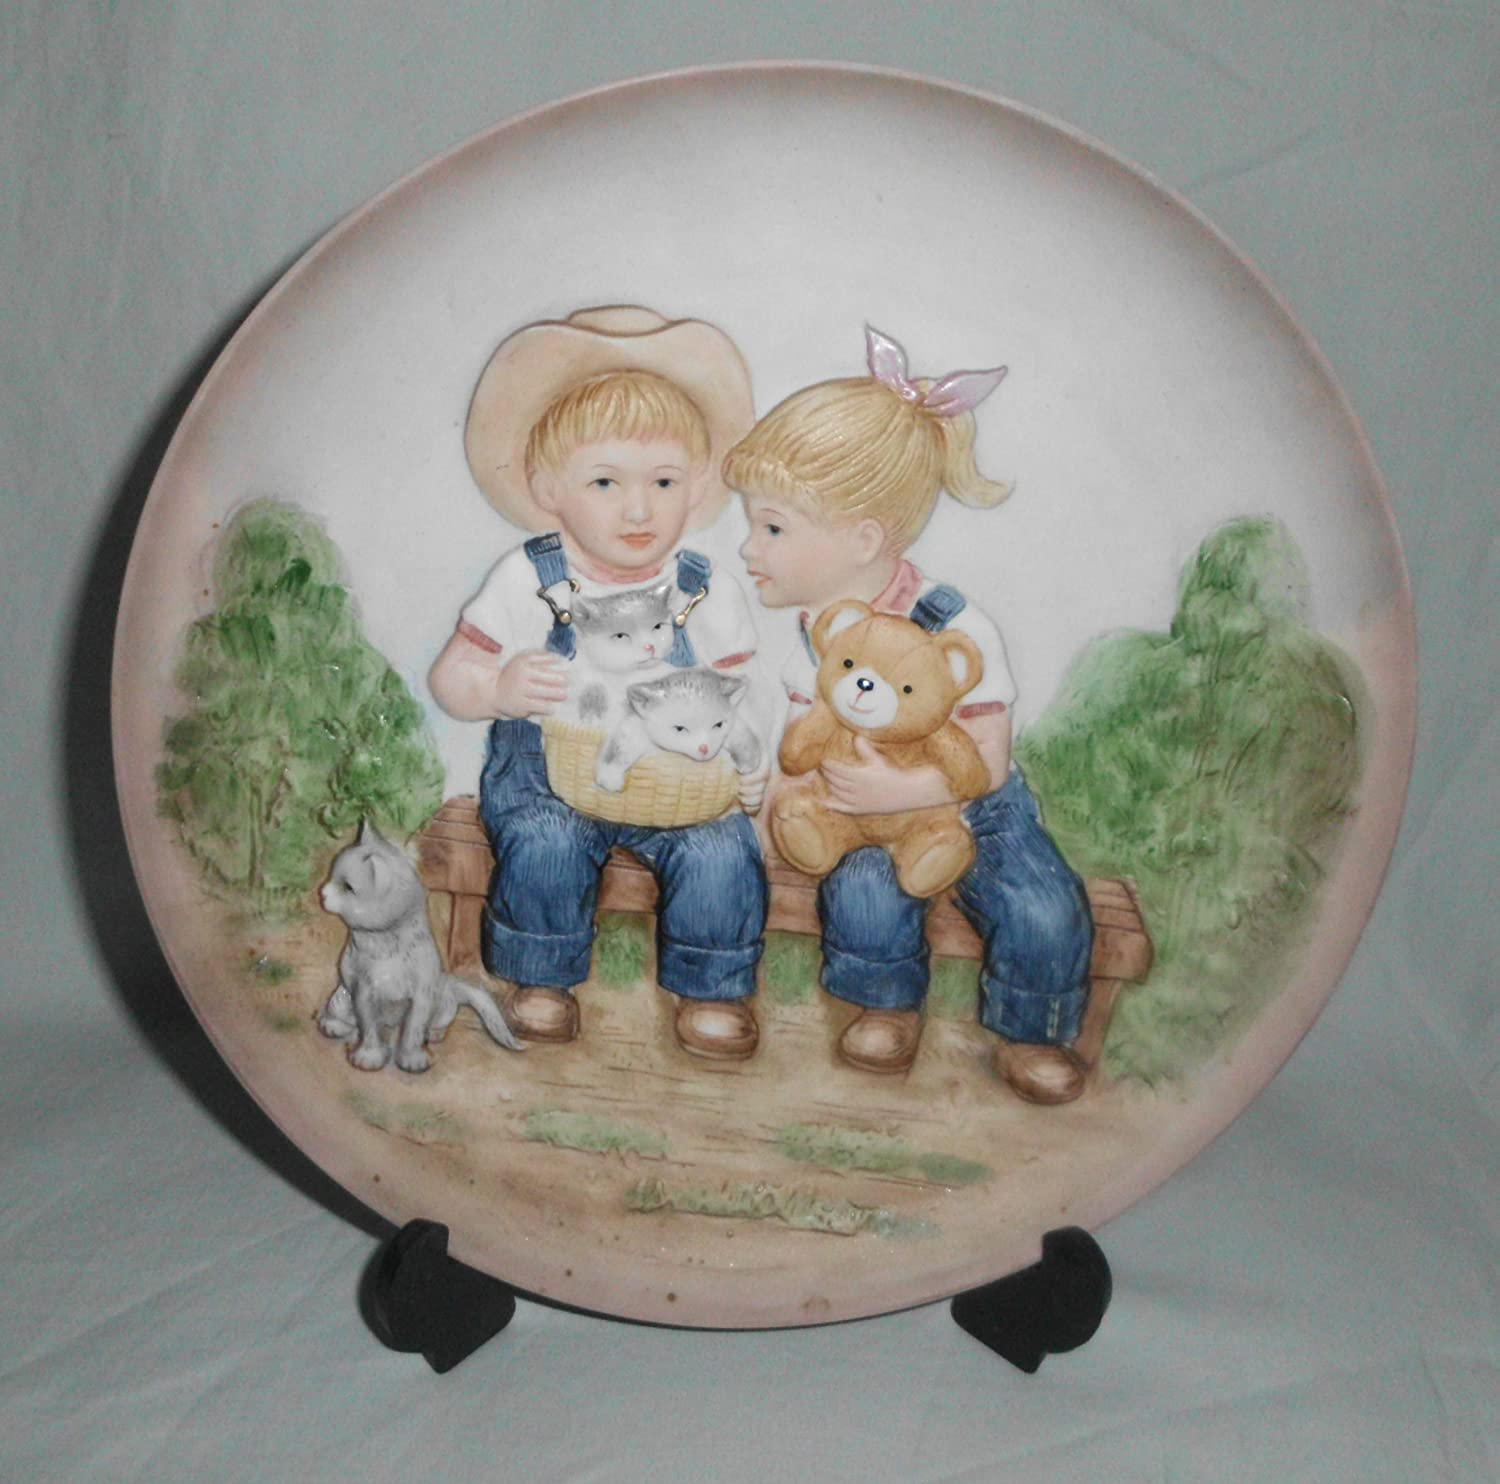 "Vintage 1985 Denim Days Homco"" Sunny Days"" Ceramic Plate #1505"